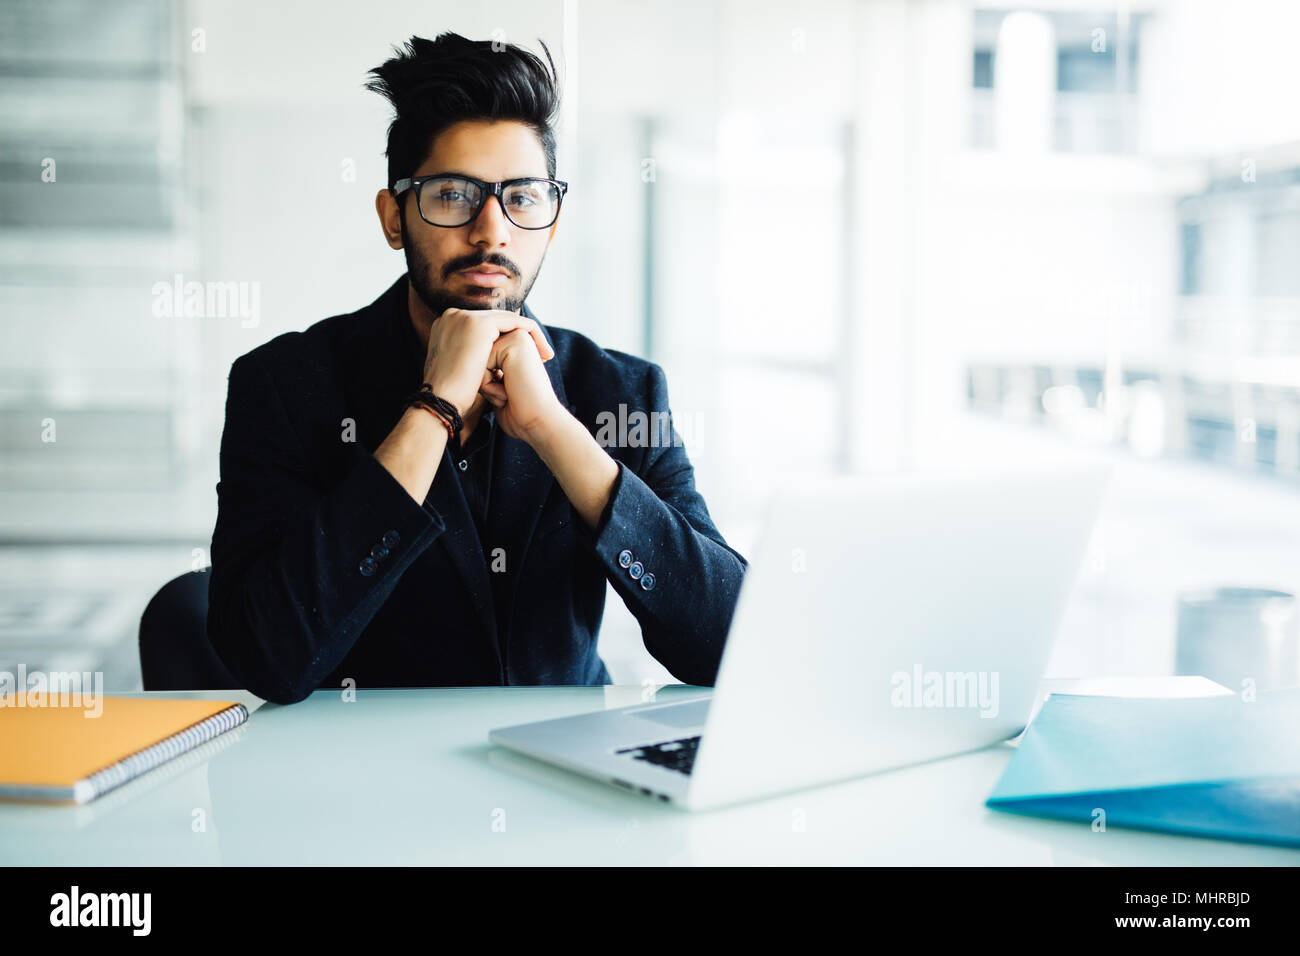 Indian business Man using laptop with hands hand on chin in his office - Stock Image